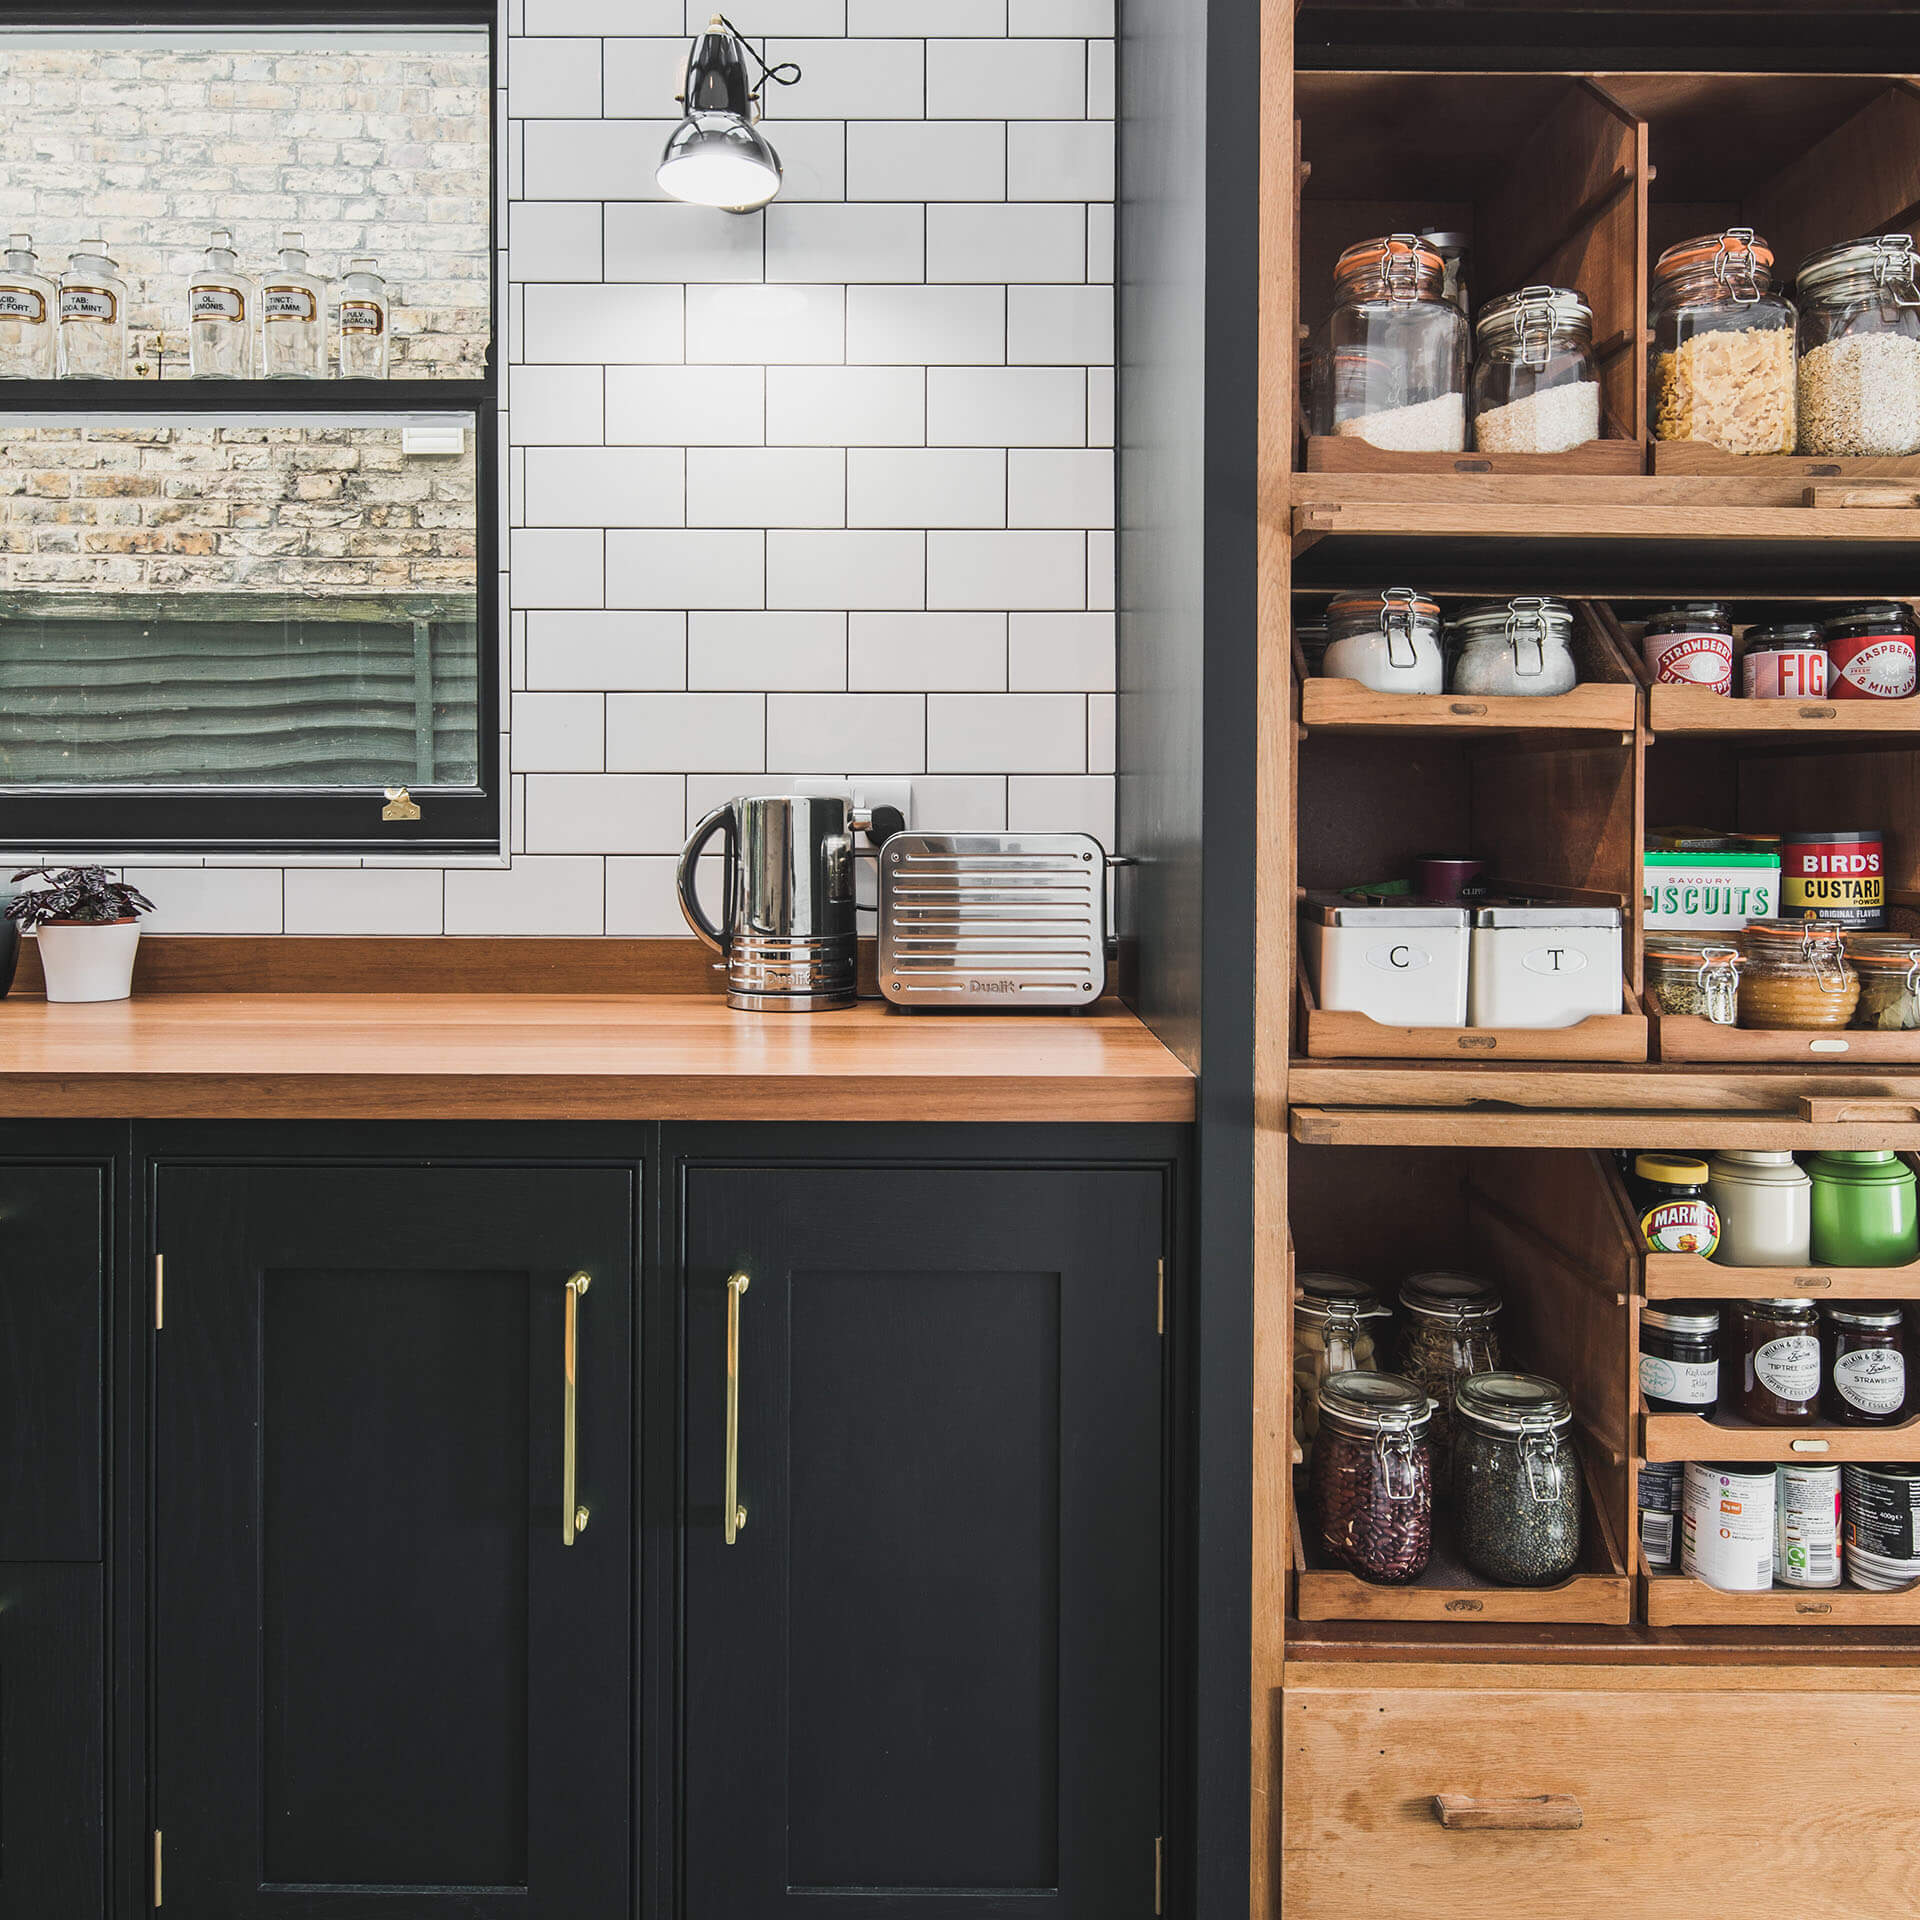 Dark Green Shaker kitchen with fully fitted reclaimed vintage haberdashery cabinet, cabinets are painted in Little Green Obsidian Green (216)